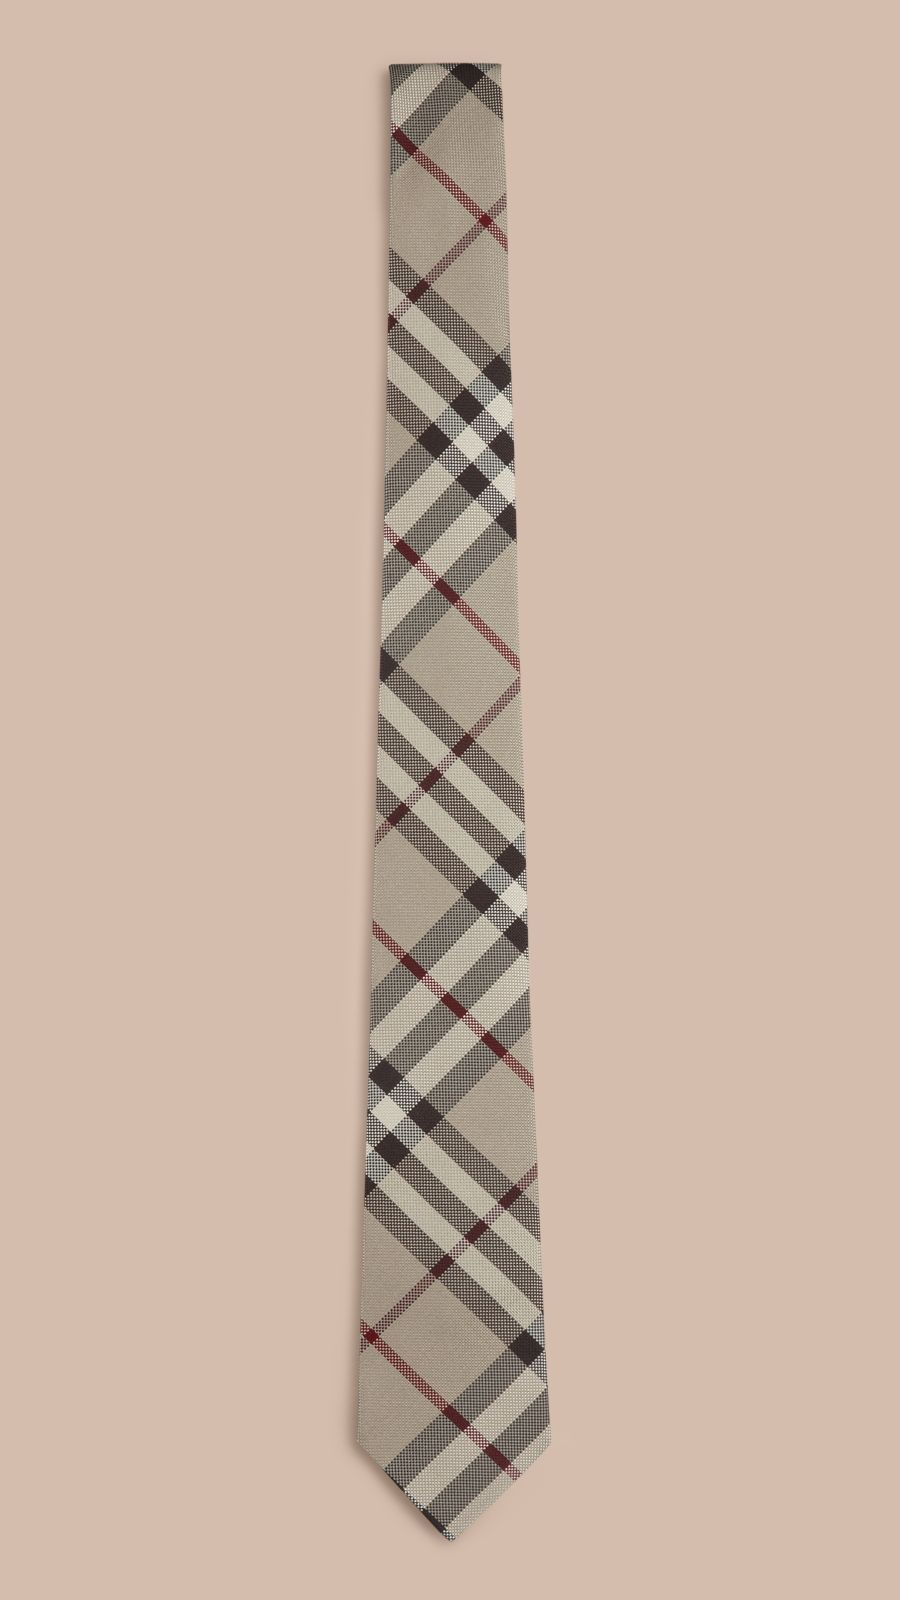 Smoked trench Modern Cut Check Silk Tie - Image 1